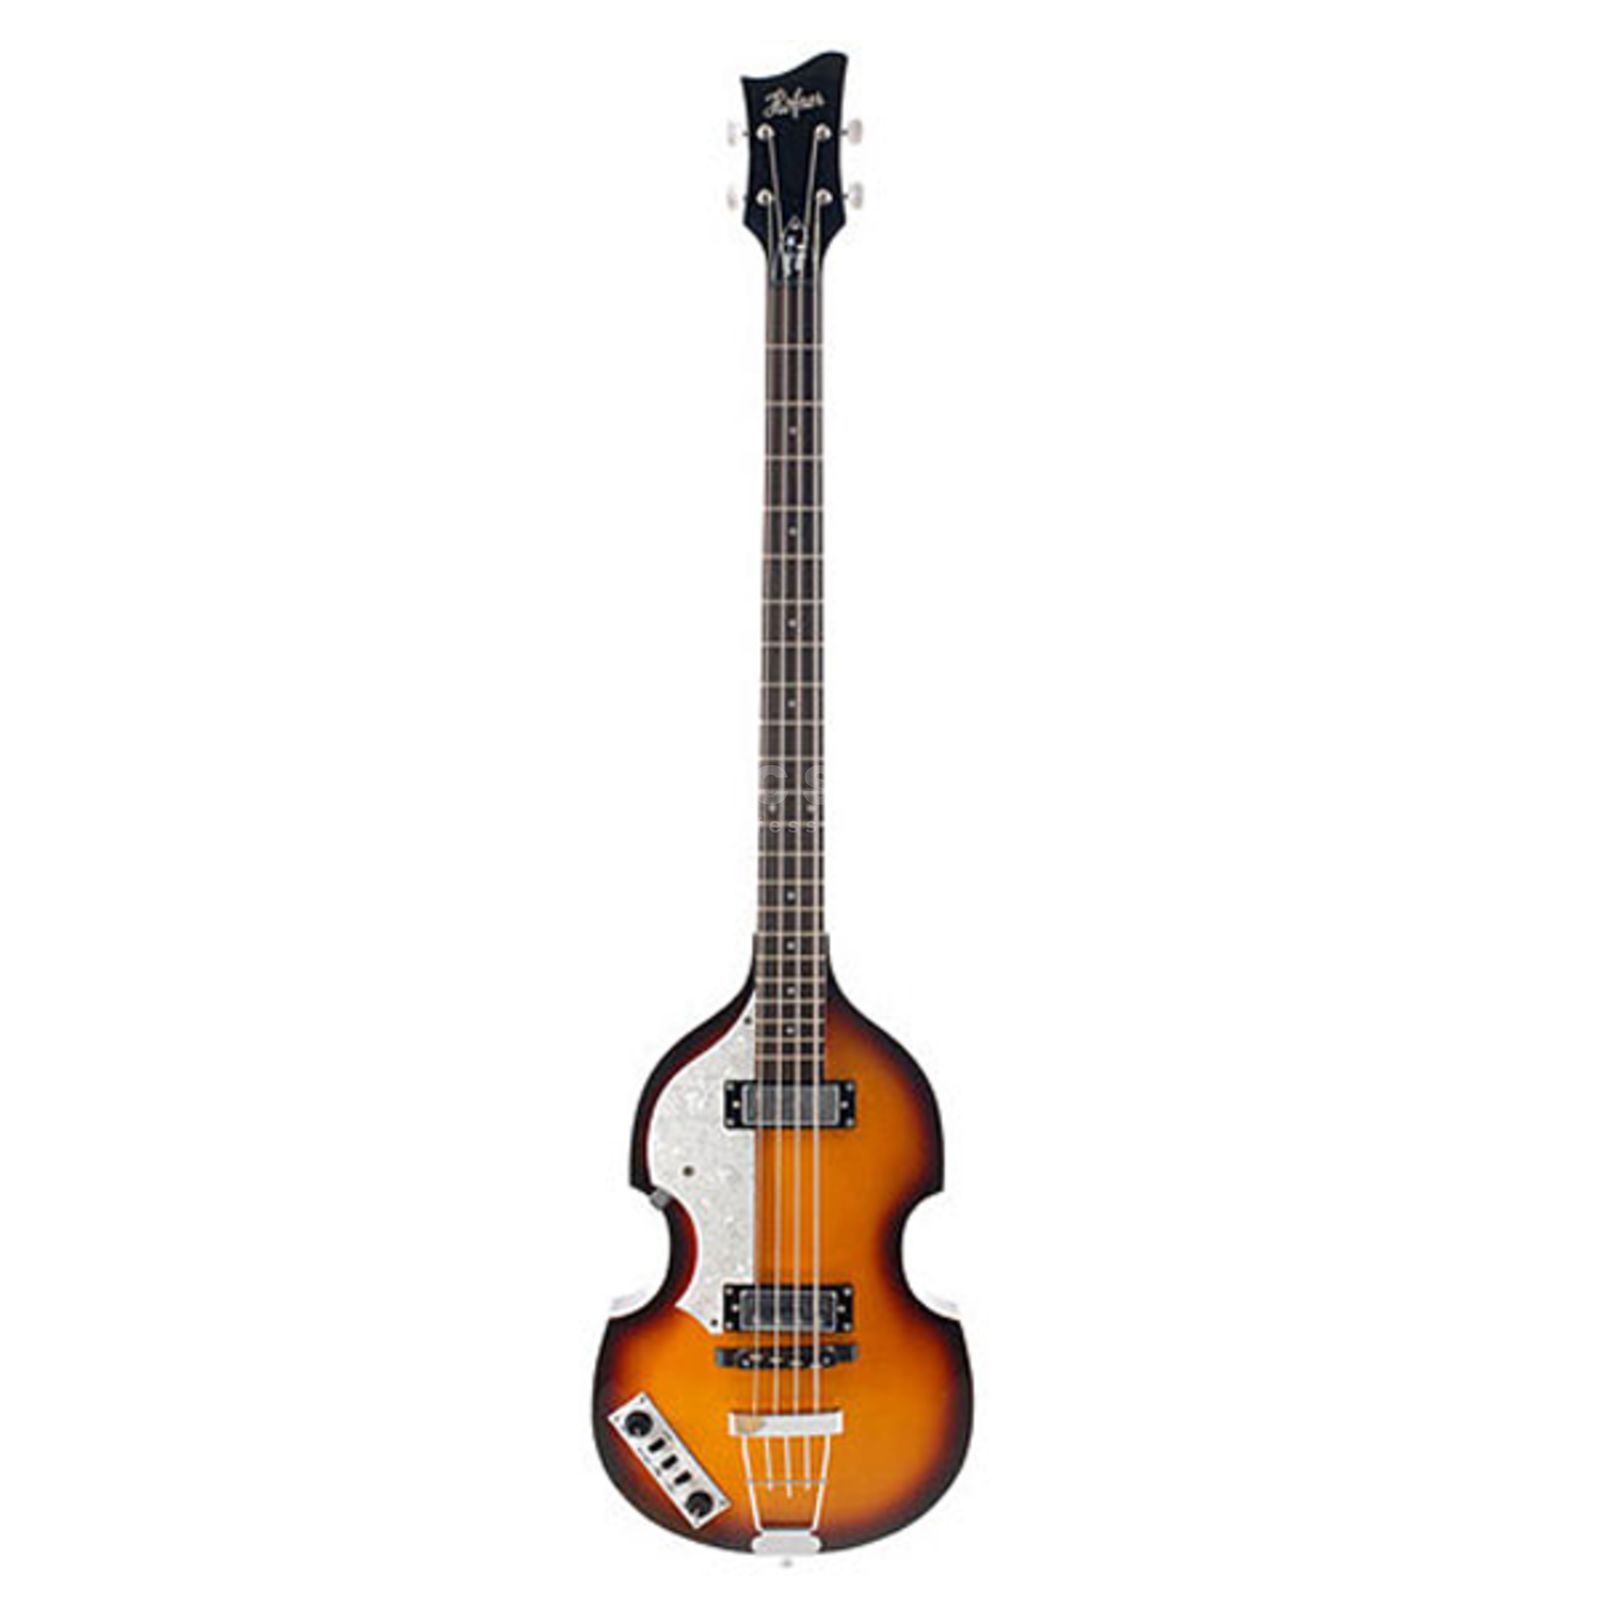 Höfner Ignition Beatles Bass LH VSB Lefthand Vintage Sunburst Product Image